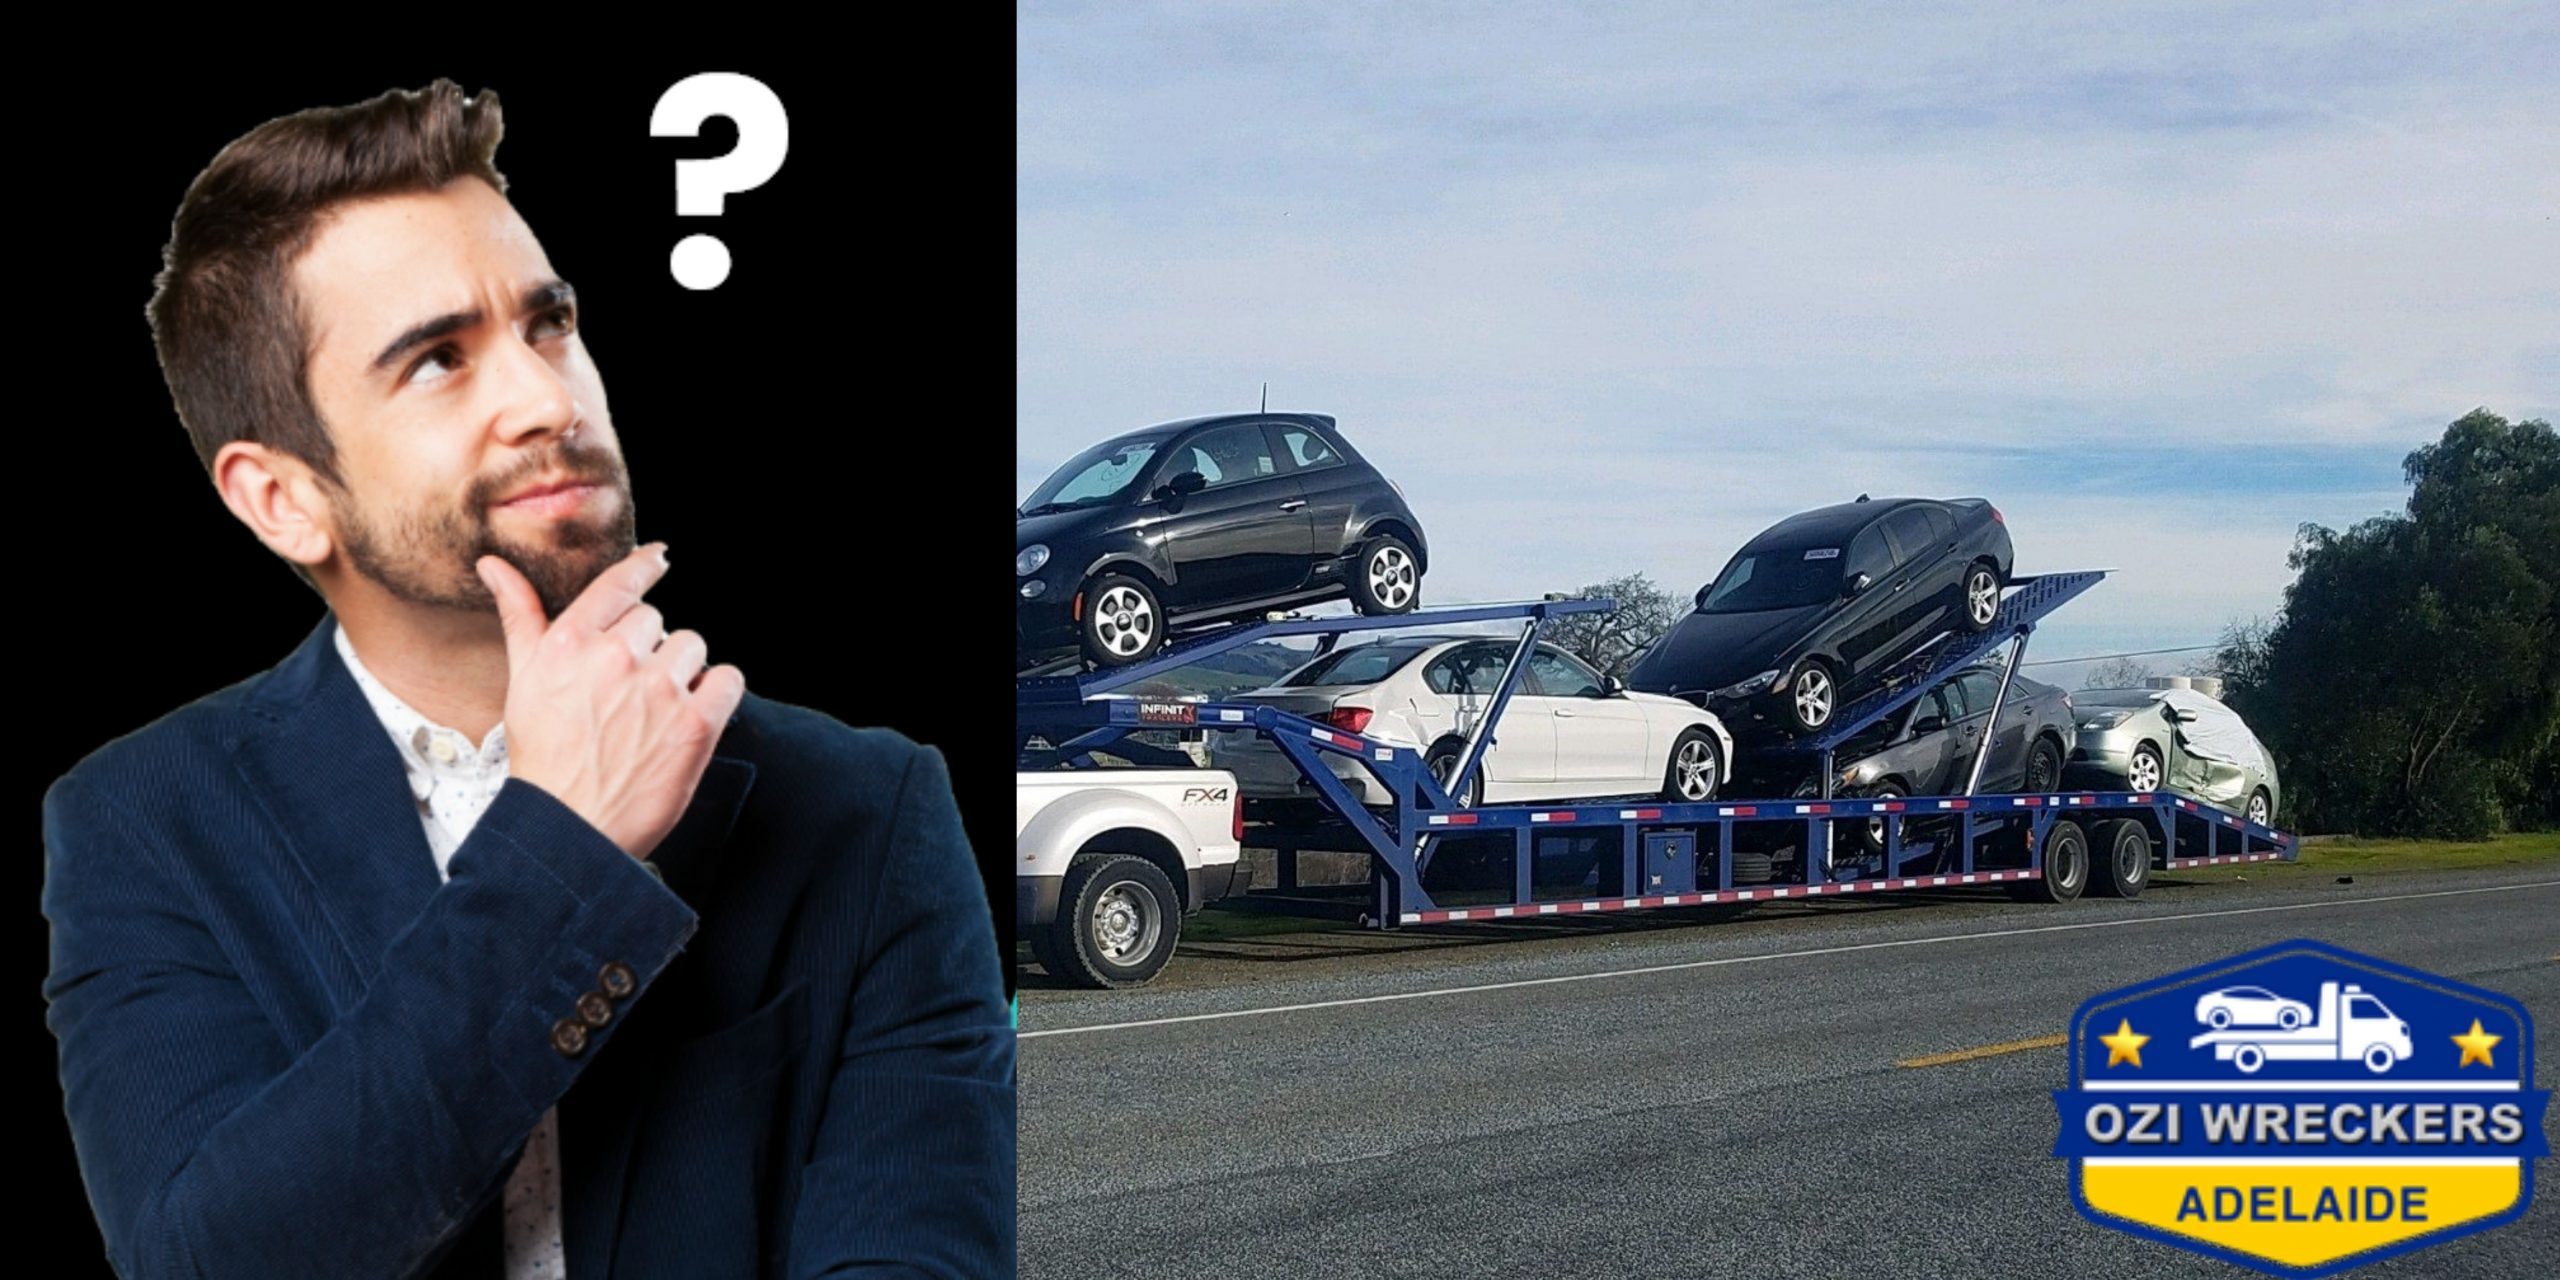 Dismantling Your Wrecked Cars